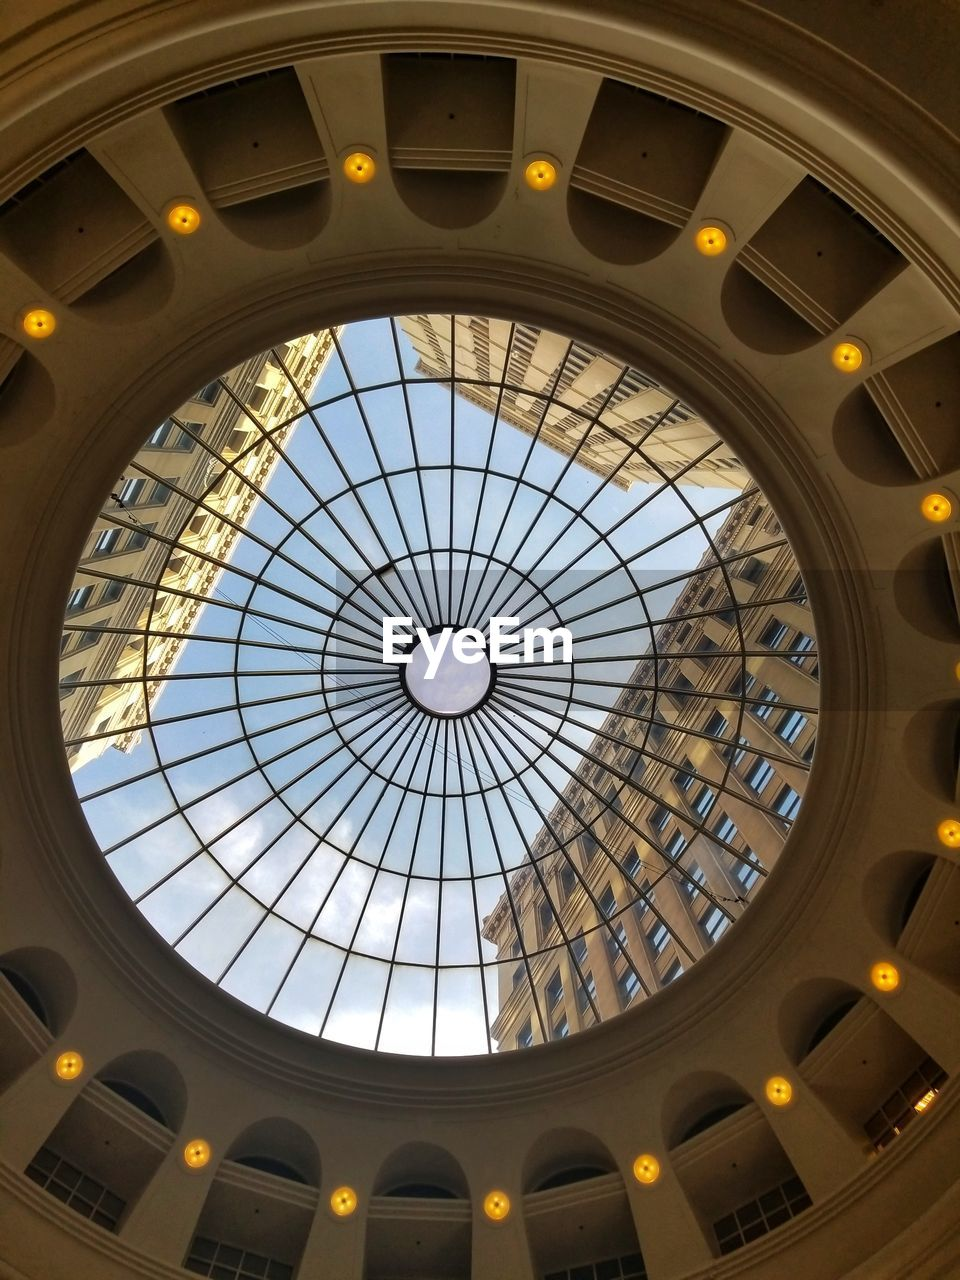 architecture, built structure, ceiling, low angle view, indoors, skylight, geometric shape, no people, pattern, illuminated, shape, circle, glass - material, sunlight, dome, window, architectural feature, directly below, building, cupola, architecture and art, ornate, luxury